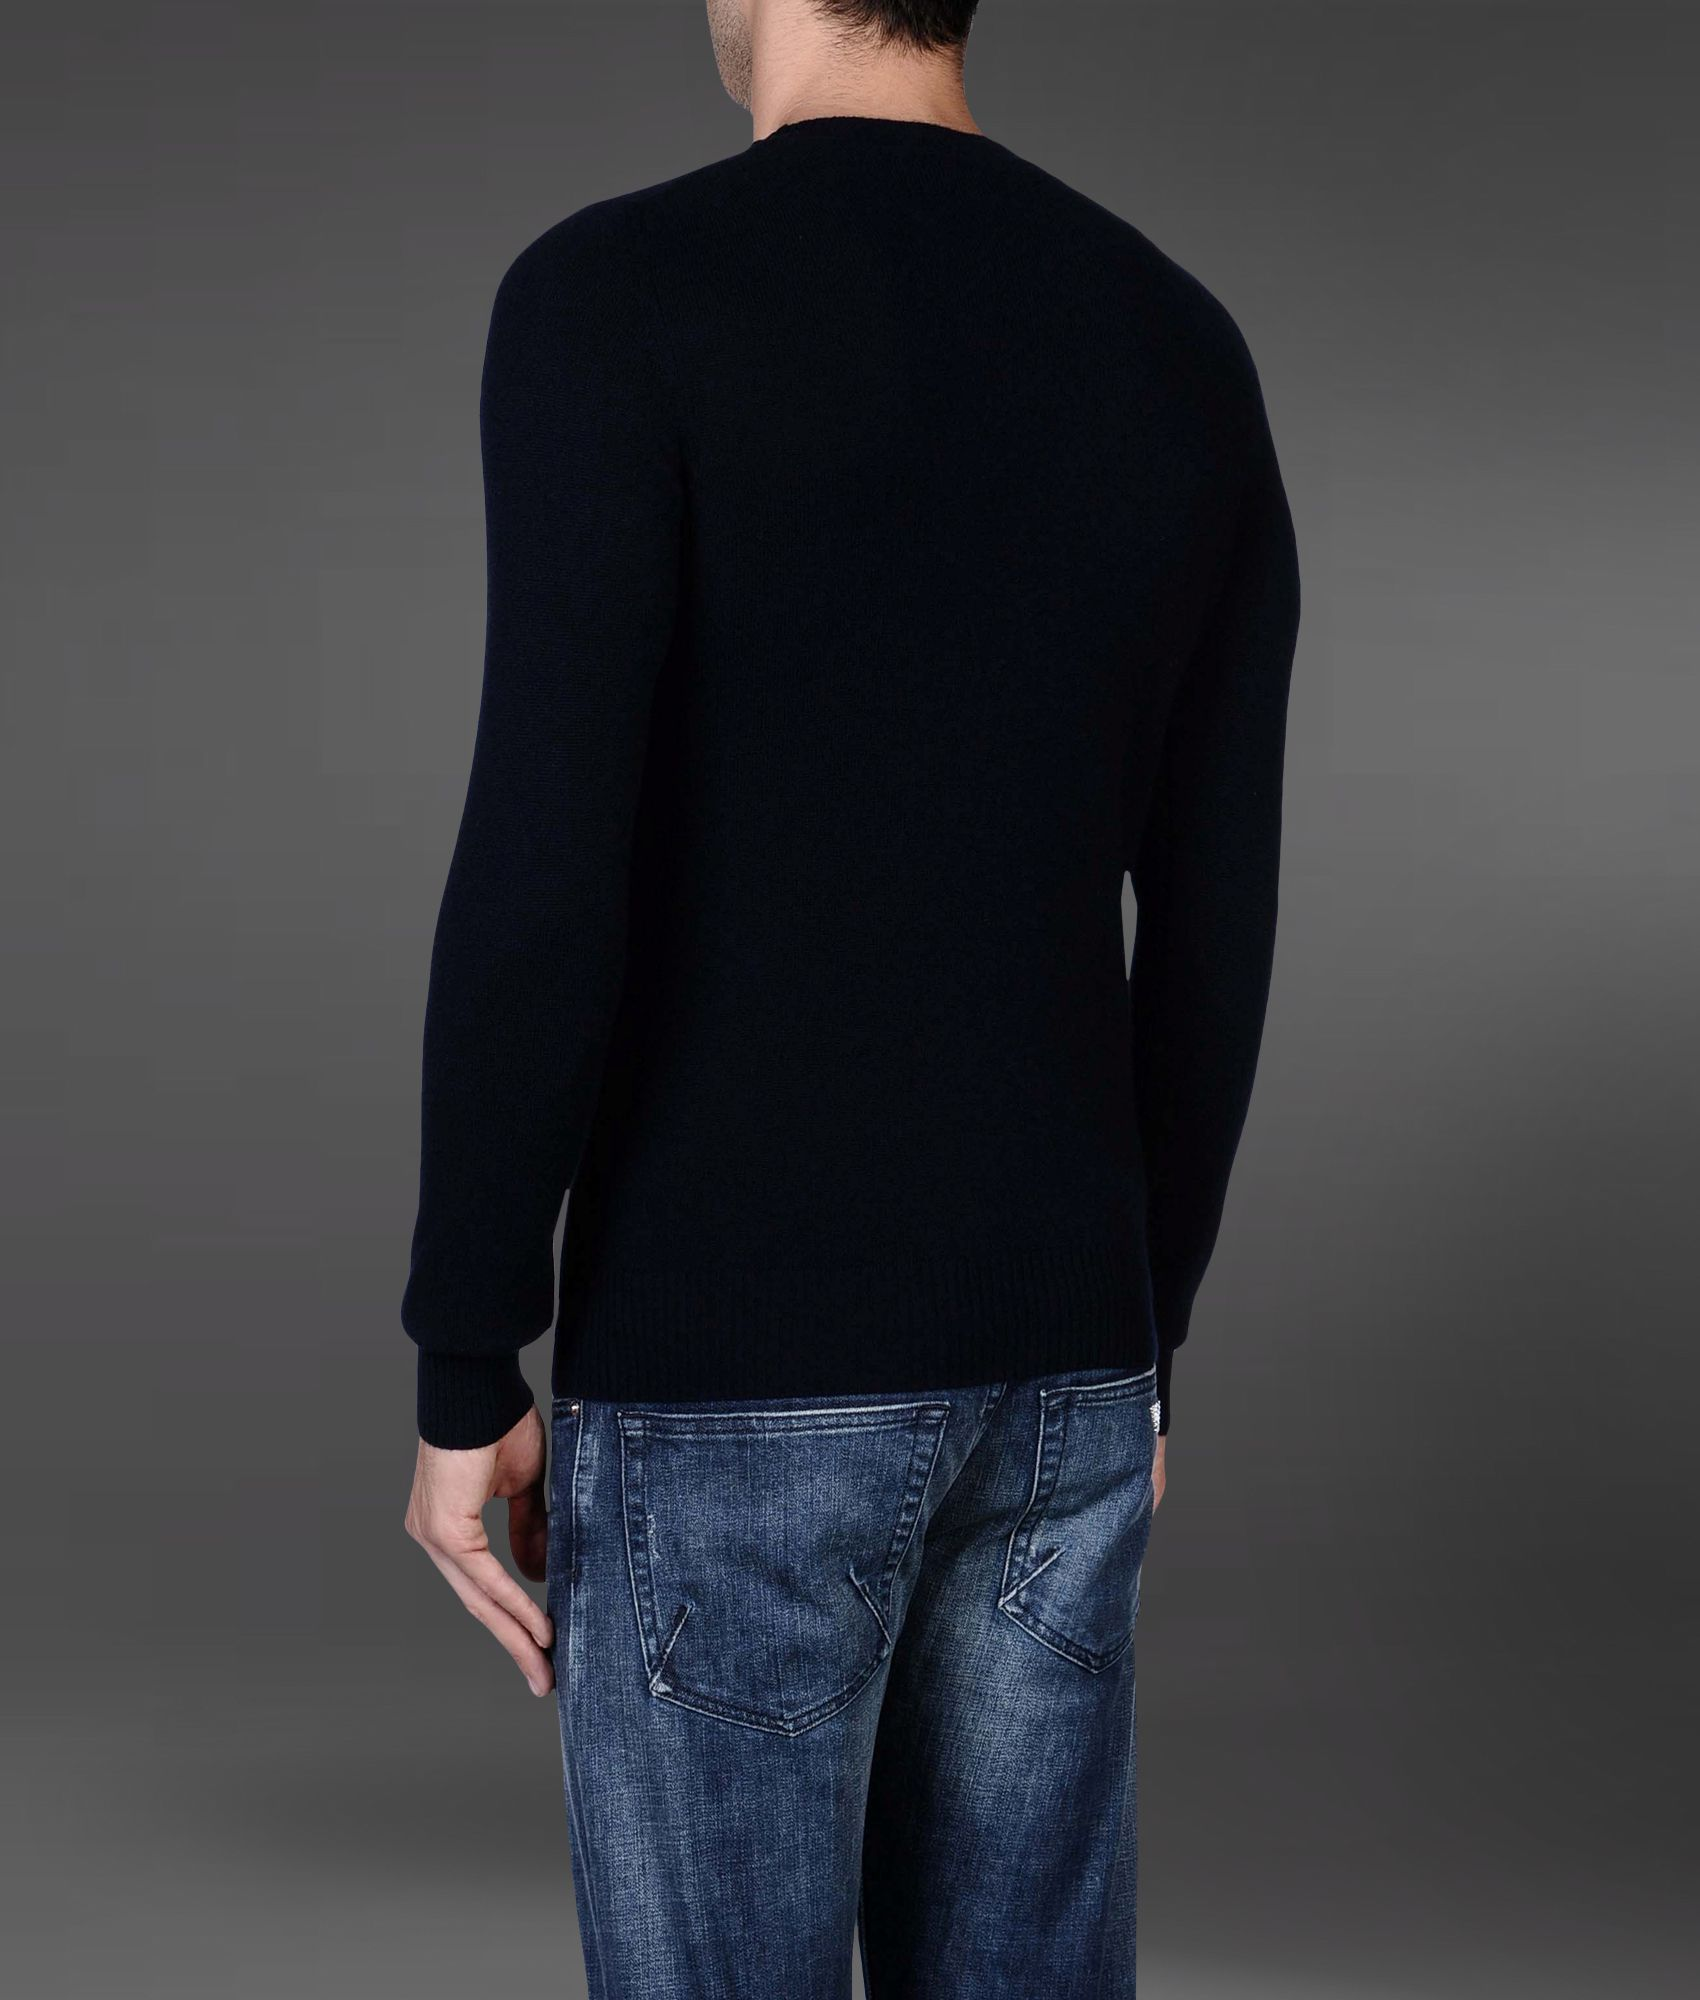 lyst emporio armani sweater in cashmere in blue for men. Black Bedroom Furniture Sets. Home Design Ideas